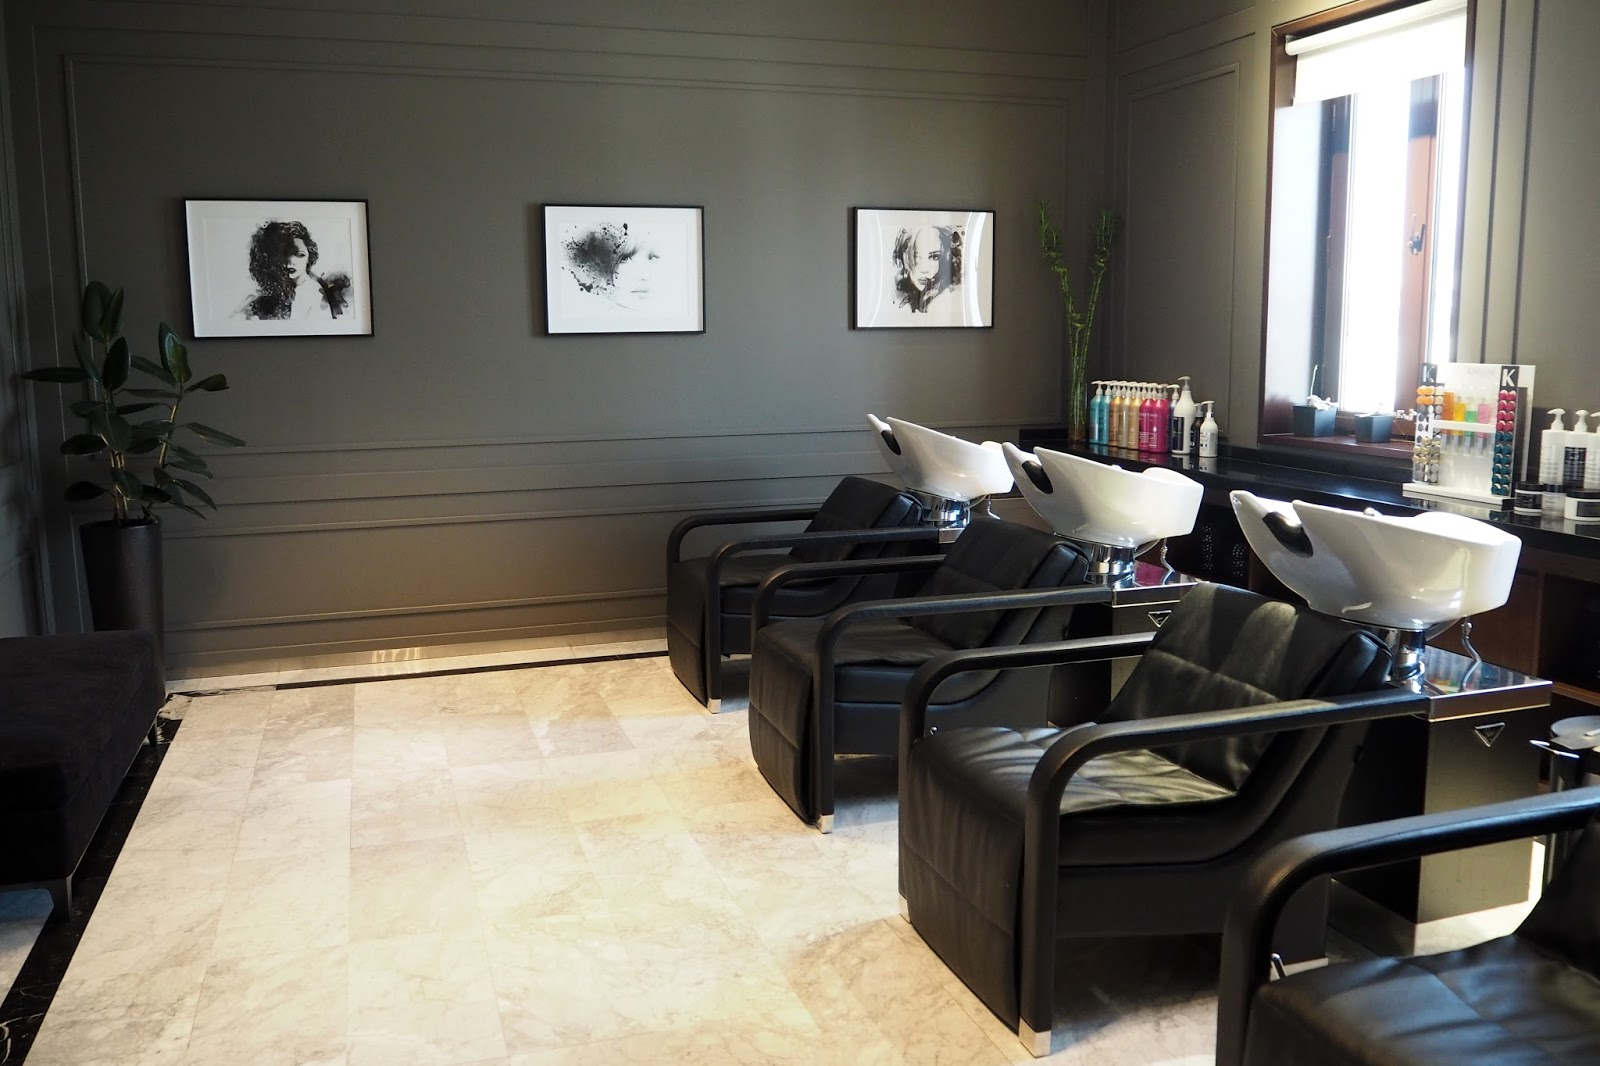 Luxury voesh manicure and pedicure rossano ferretti spa for 7 shades salon dubai